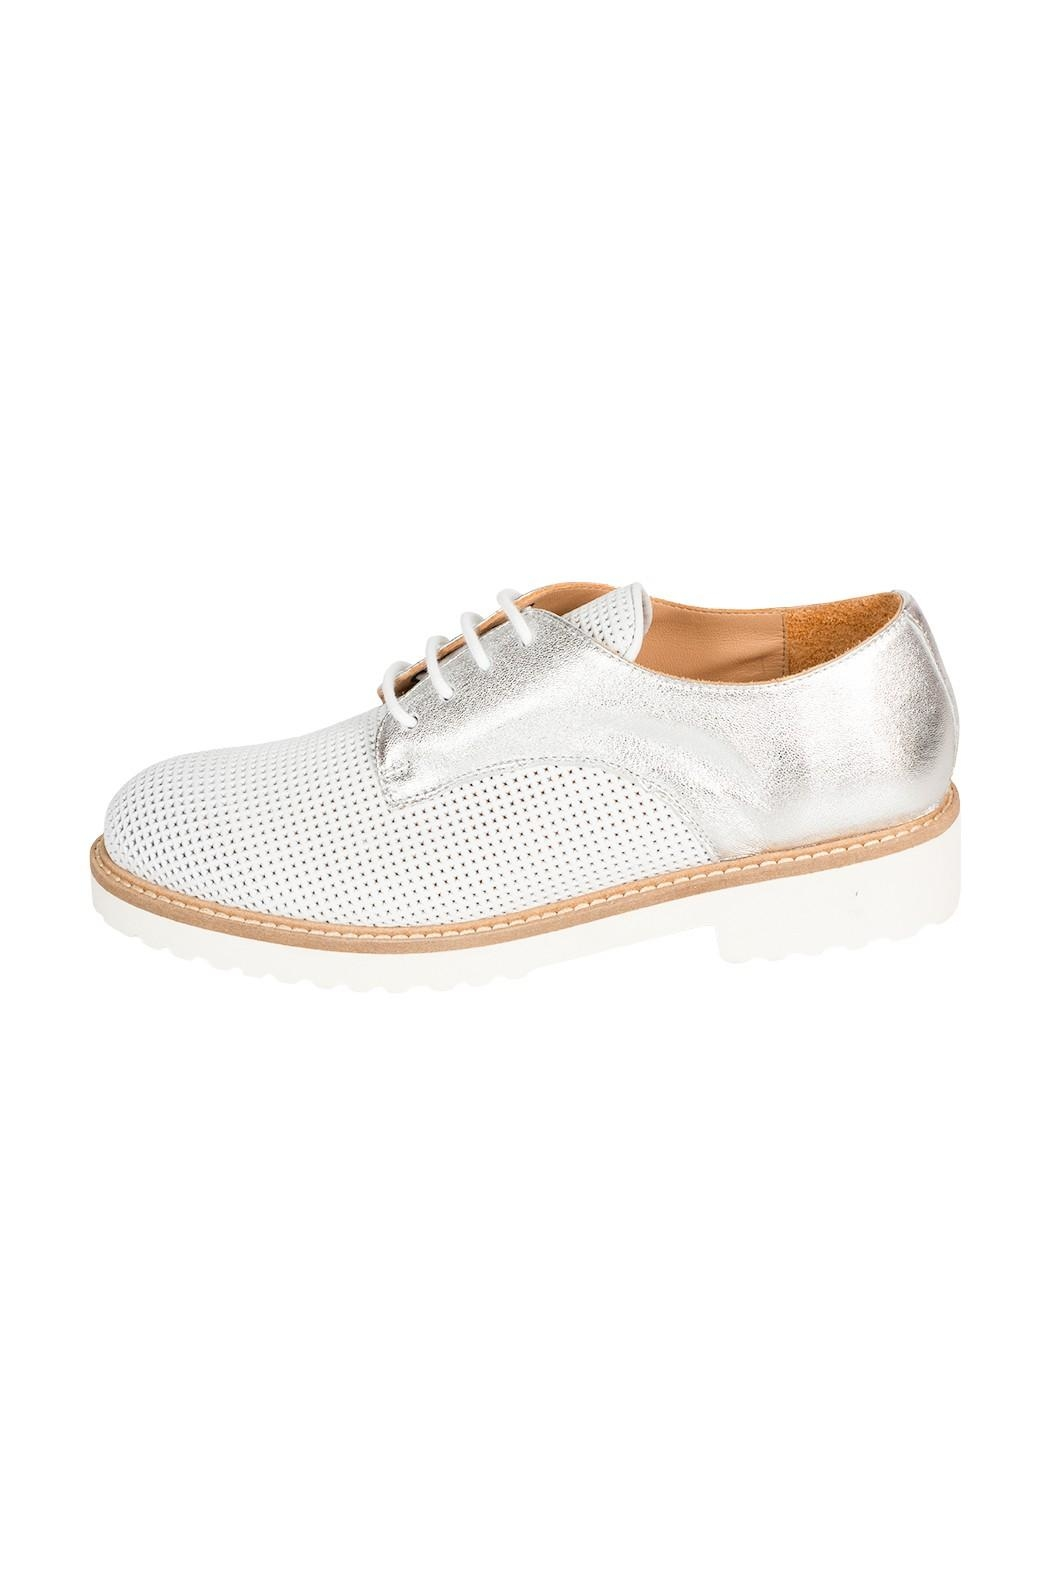 Pascucci White-Silver Leather Brogue - Main Image